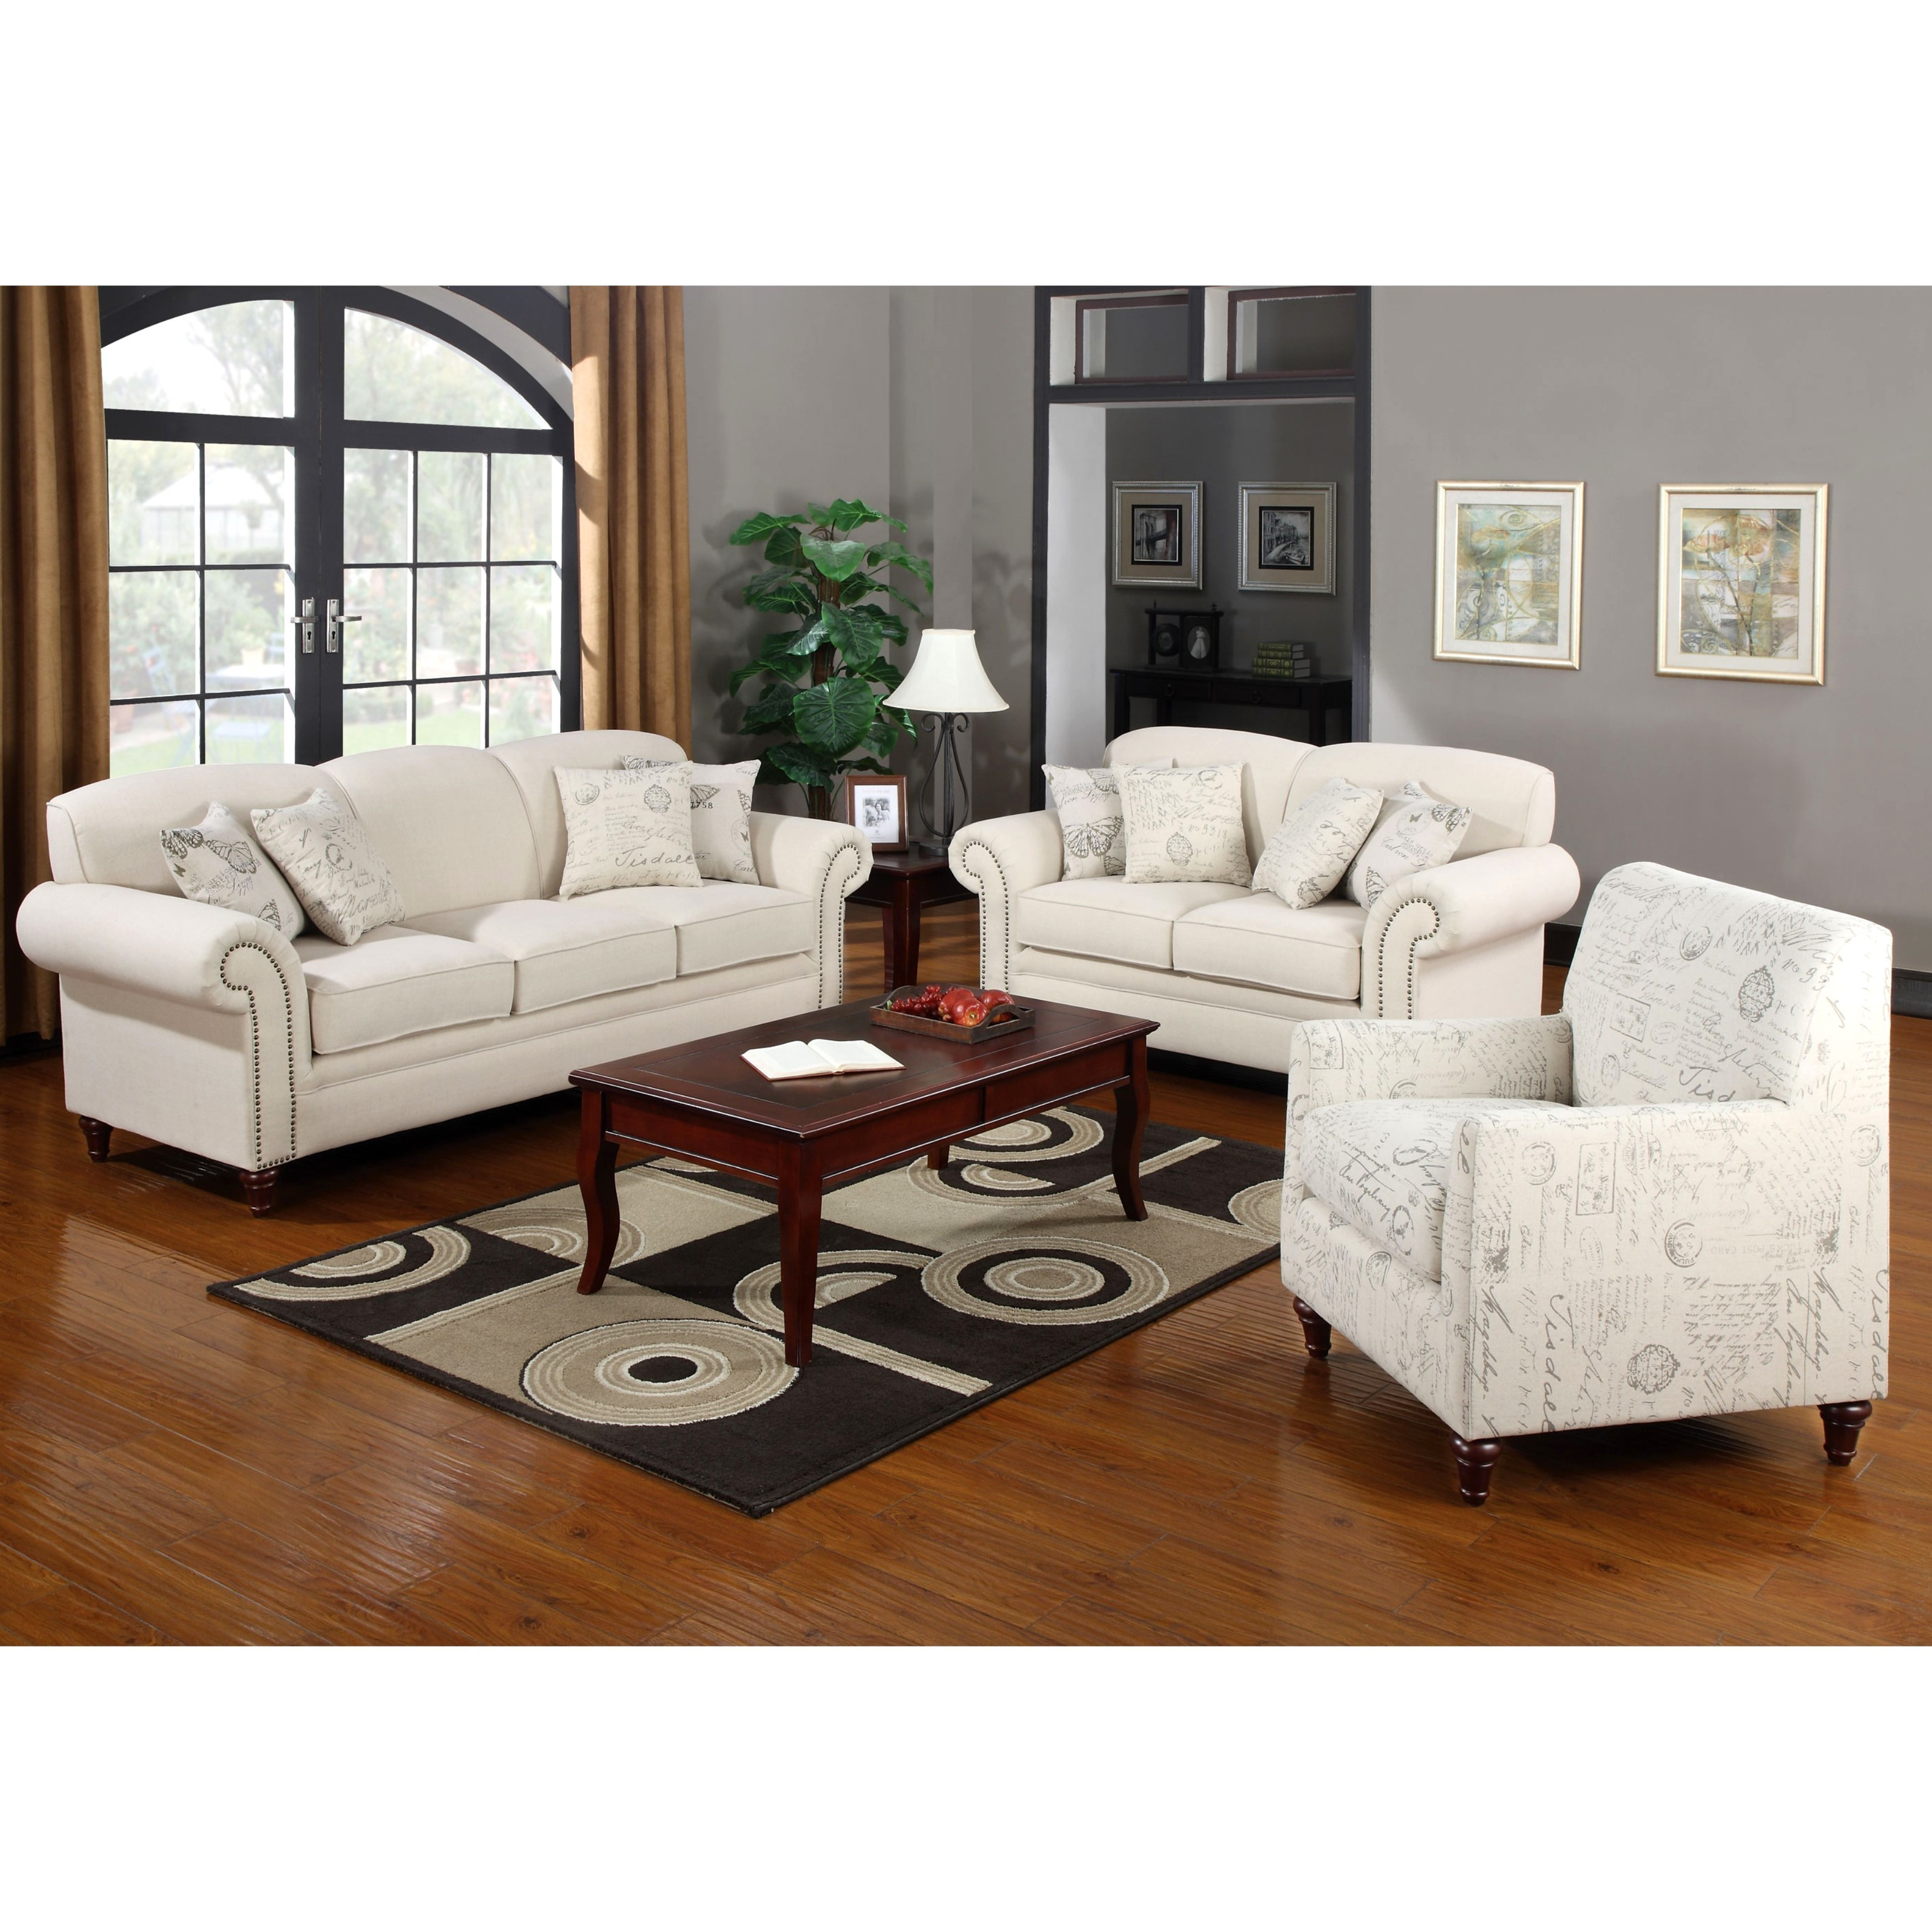 Living Room In French French Traditional Design Living Room Sofa Collection With Nailhead Trim